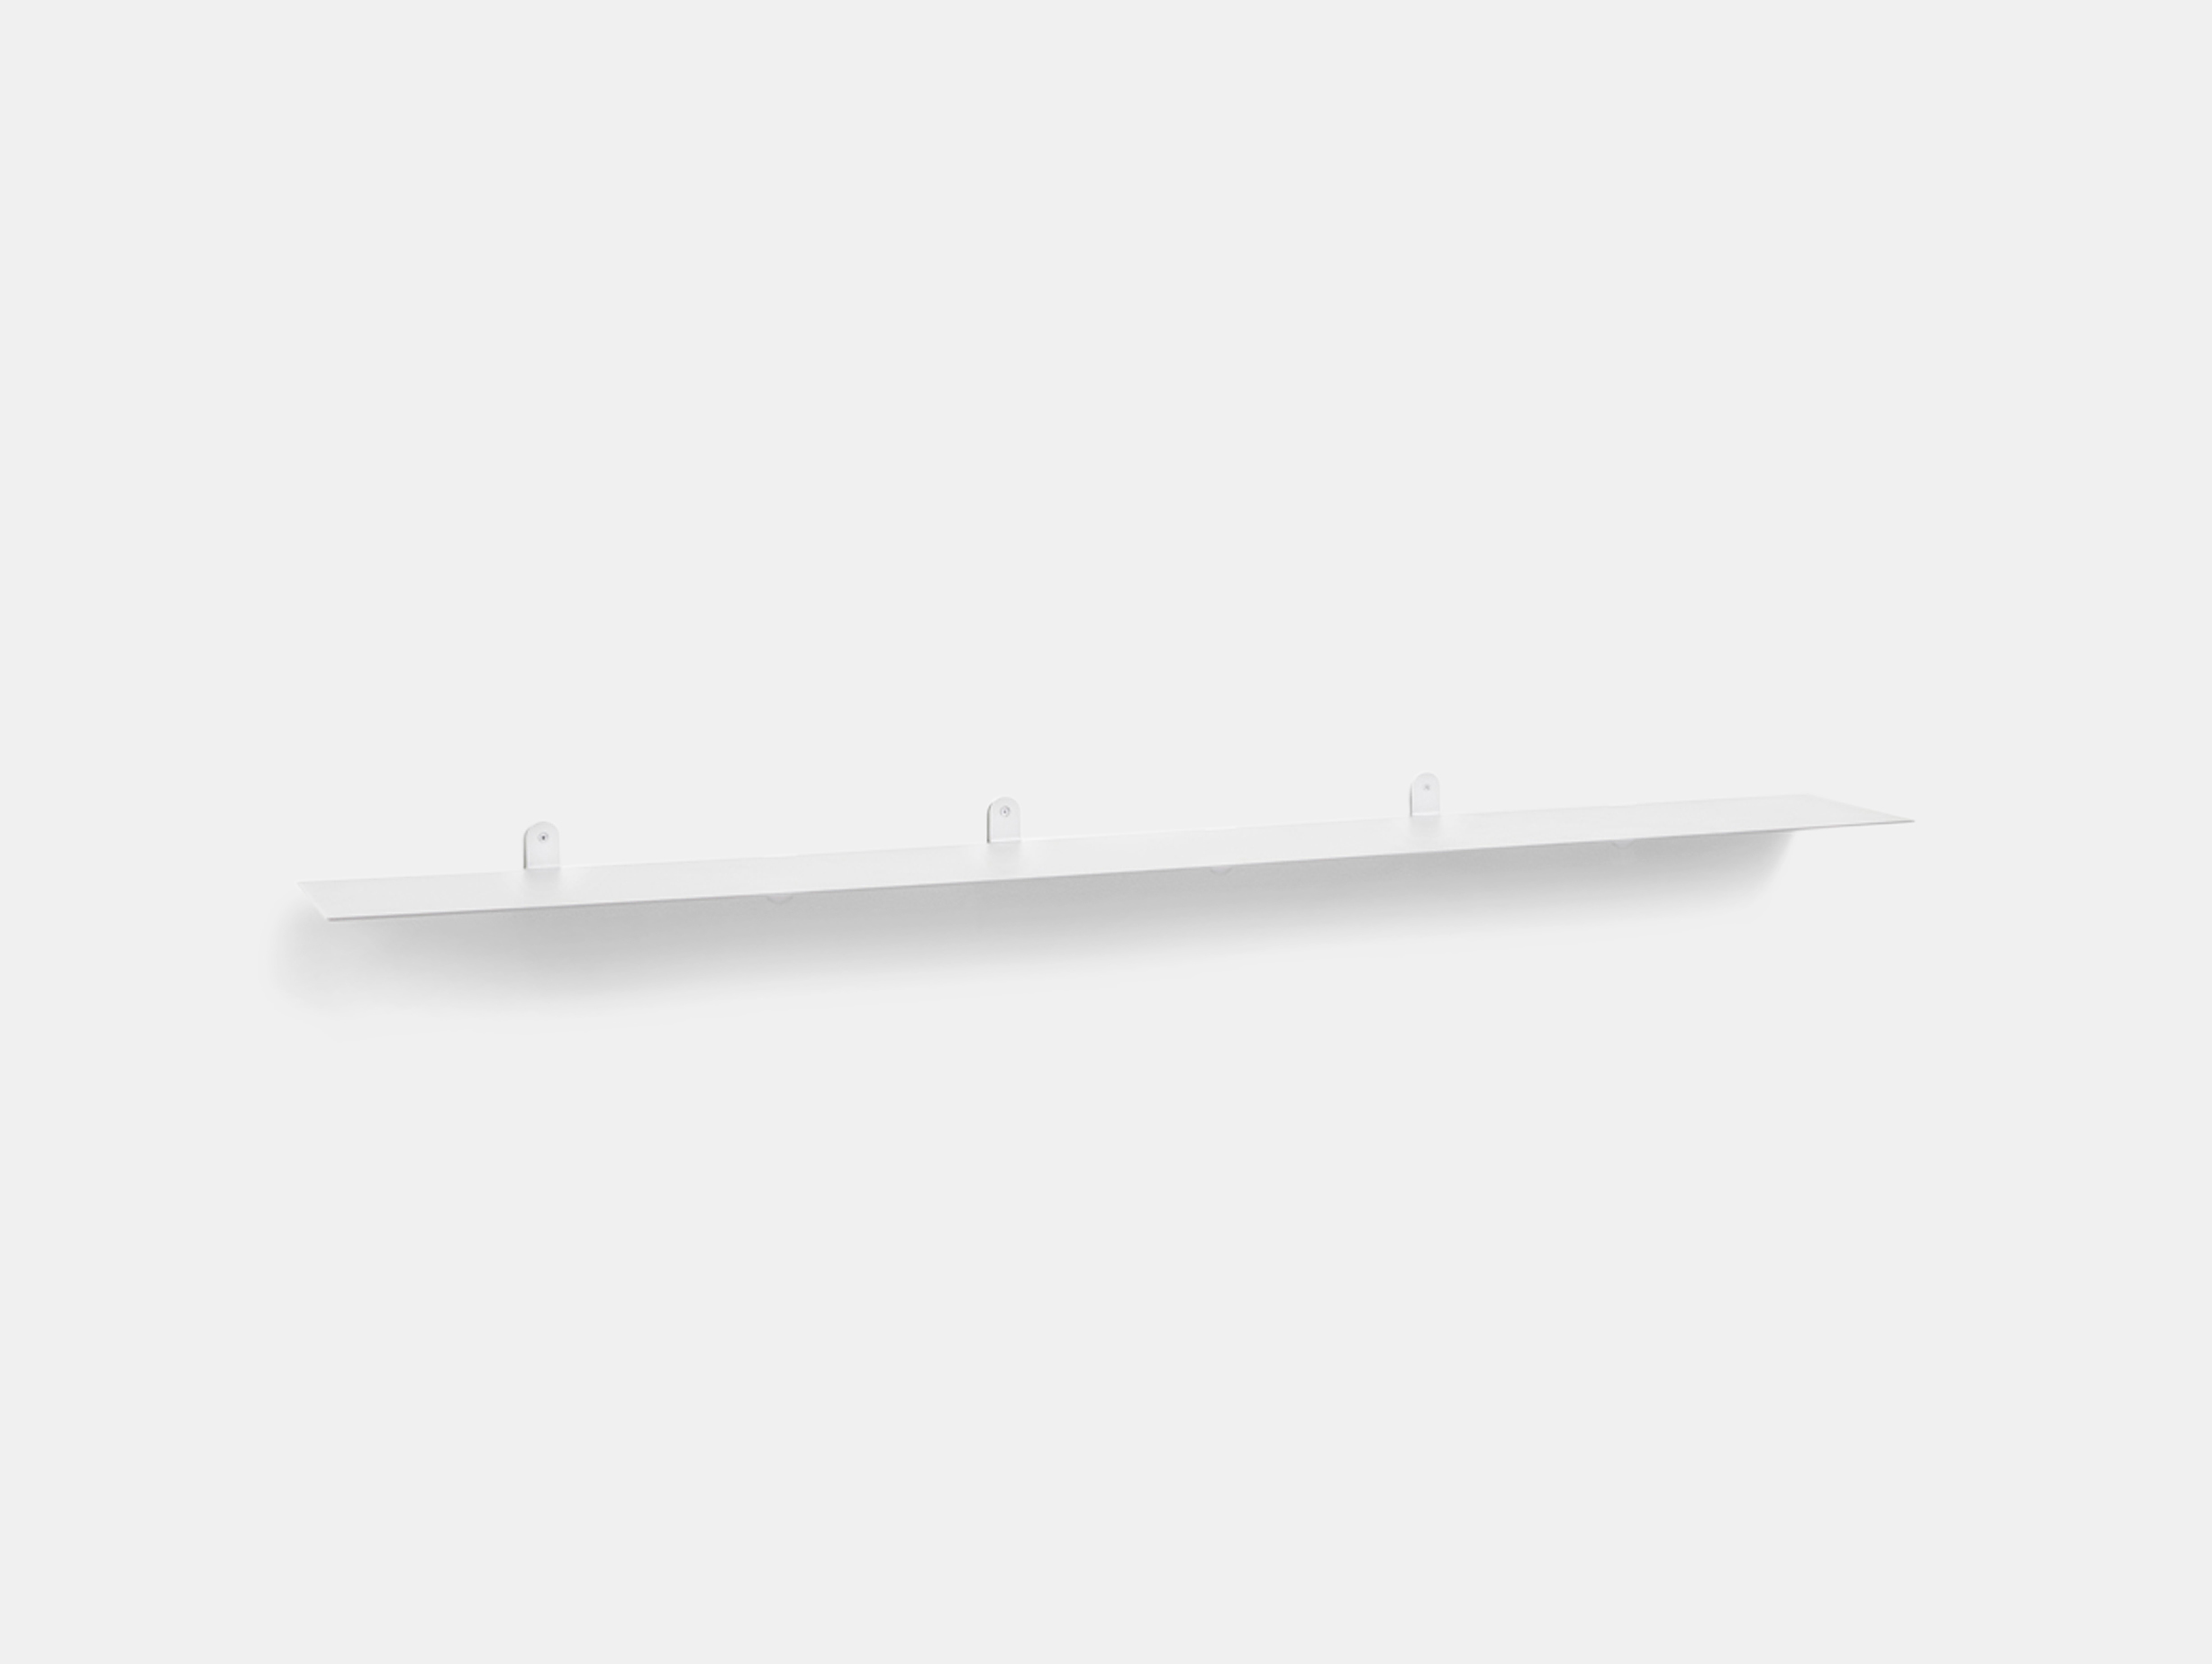 Valerie Objects Shelf No 1 2 3 4 V9017103 W Muller Van Severen